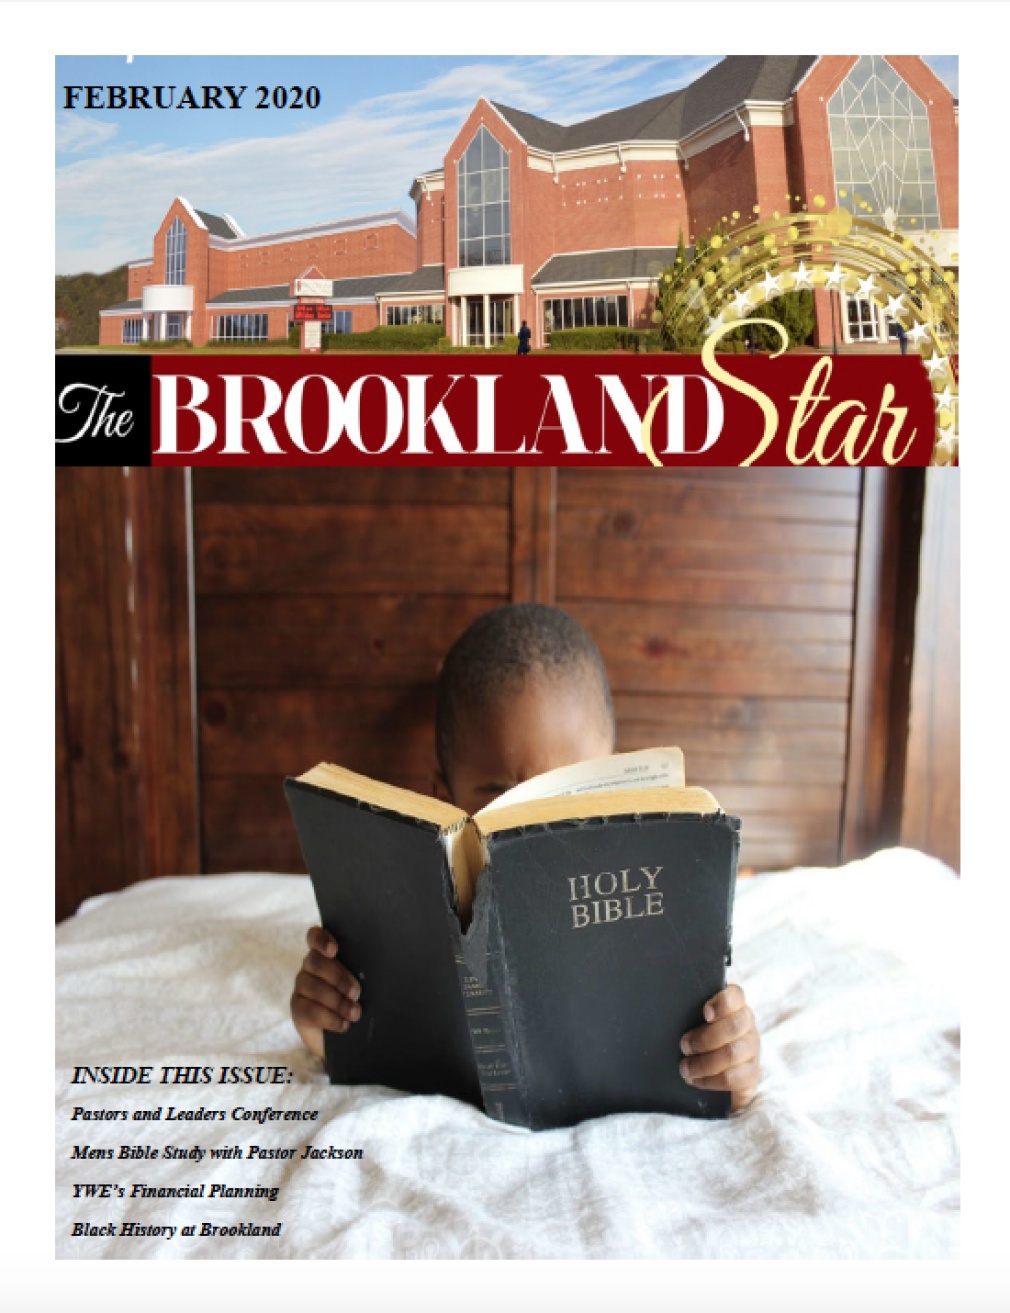 The Brookland Star February 2020 Edition